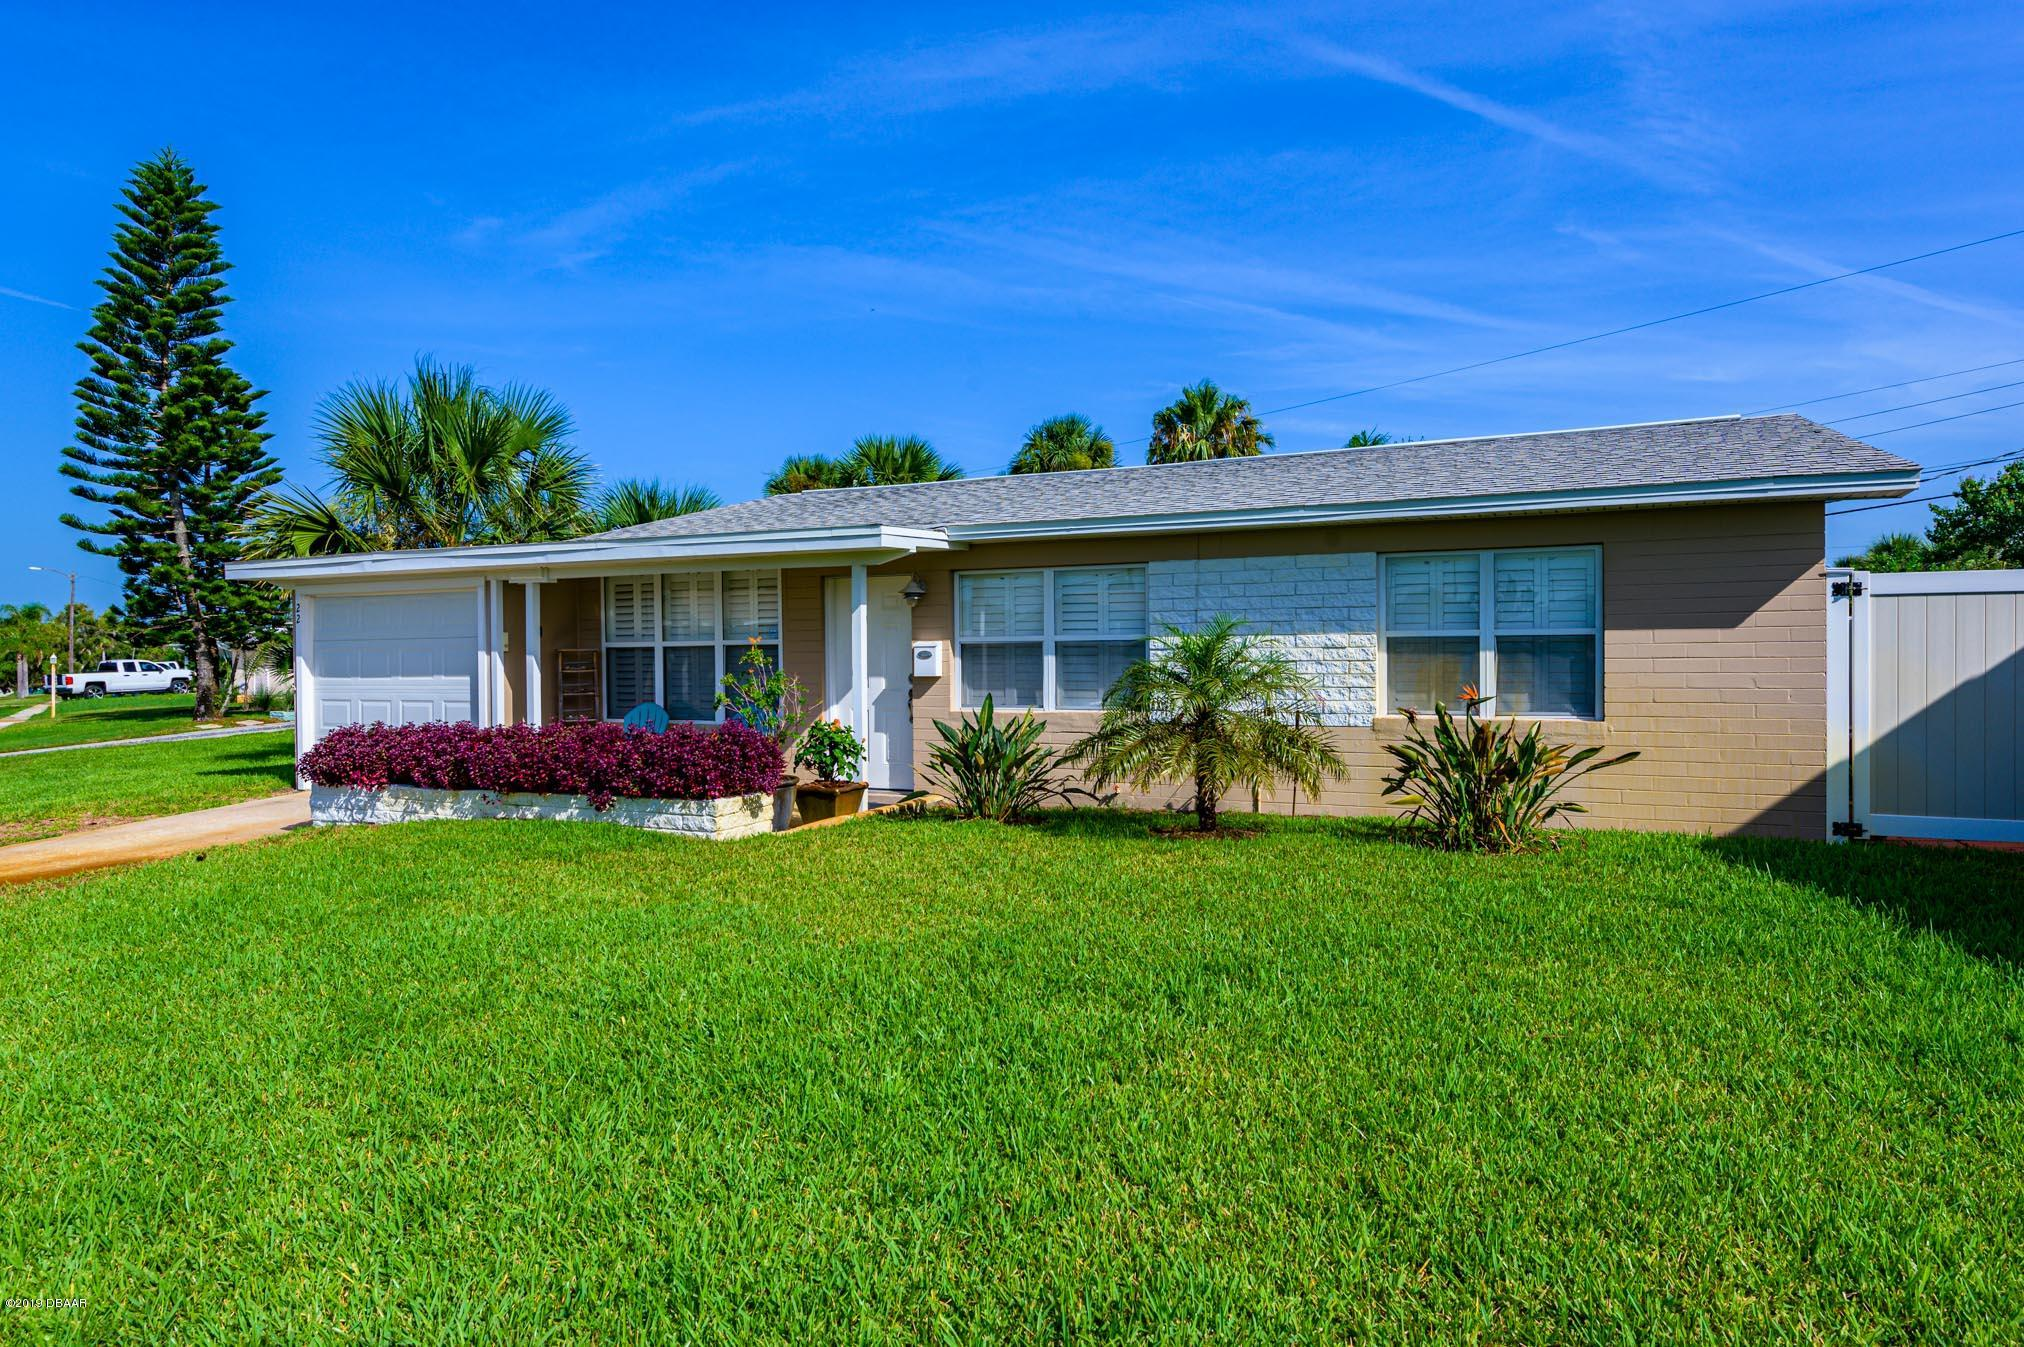 22 Tropical Drive, Ormond-By-The-Sea in Volusia County, FL 32176 Home for Sale